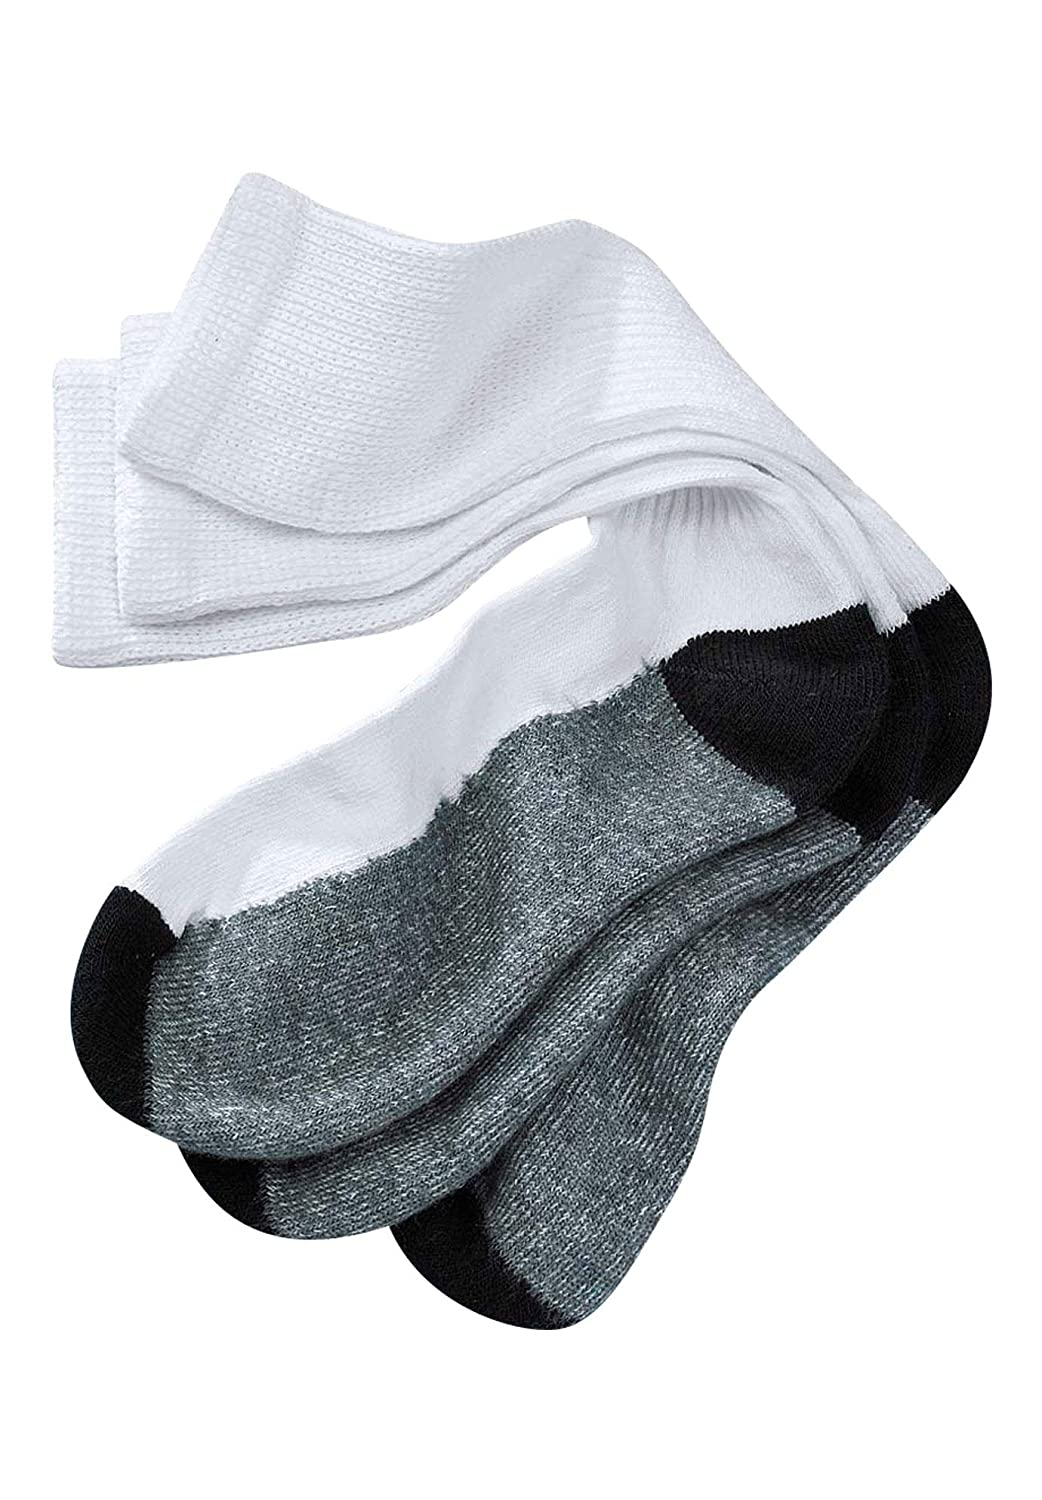 Kingsize Men's Big & Tall 3-Pack Full Length Cushioned Crew Socks